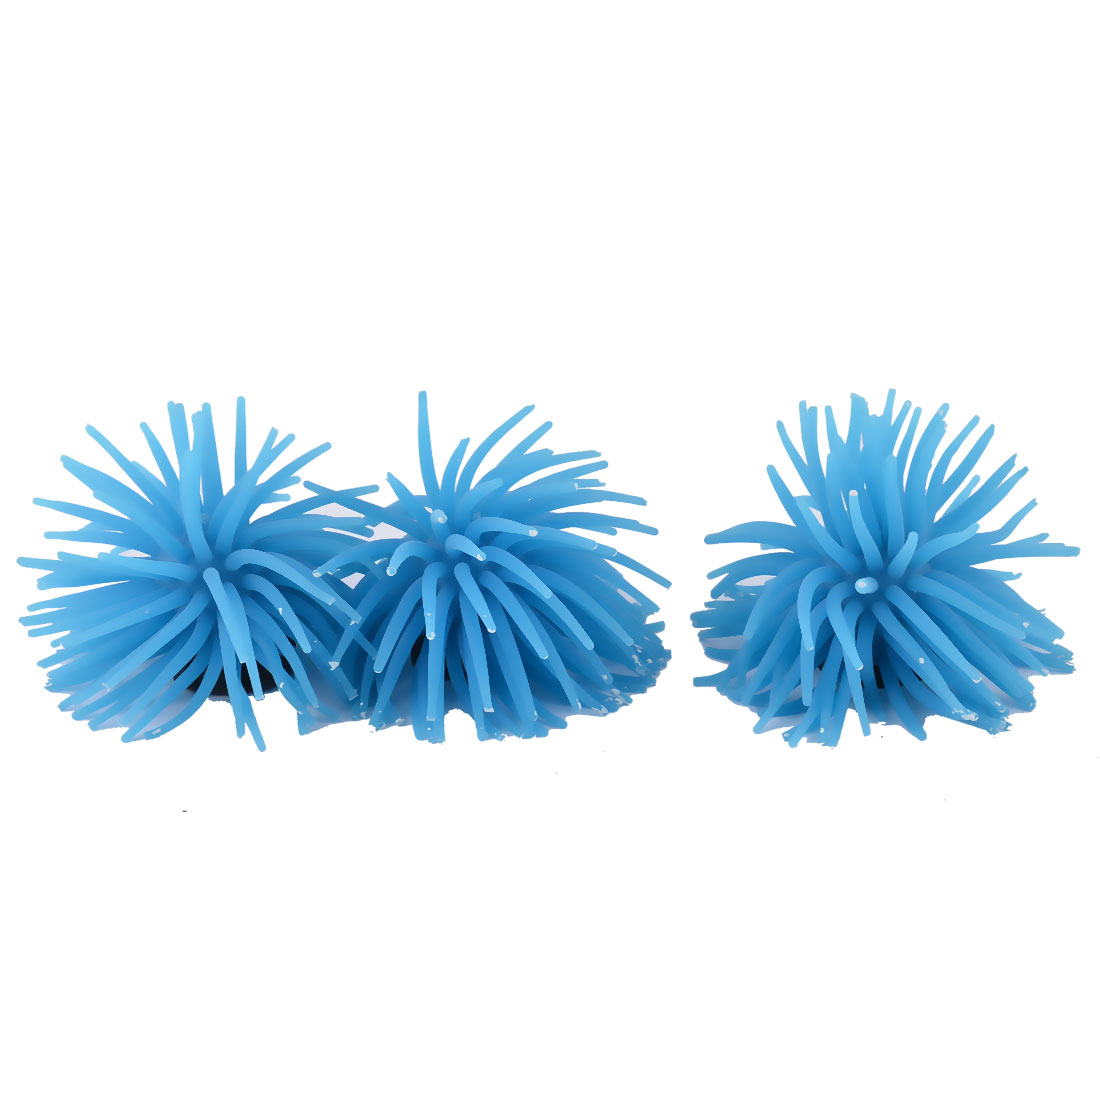 Aquarium Ceramic Base Rubber Artificial Sea Hedgehog Decoration Blue 3 Pcs